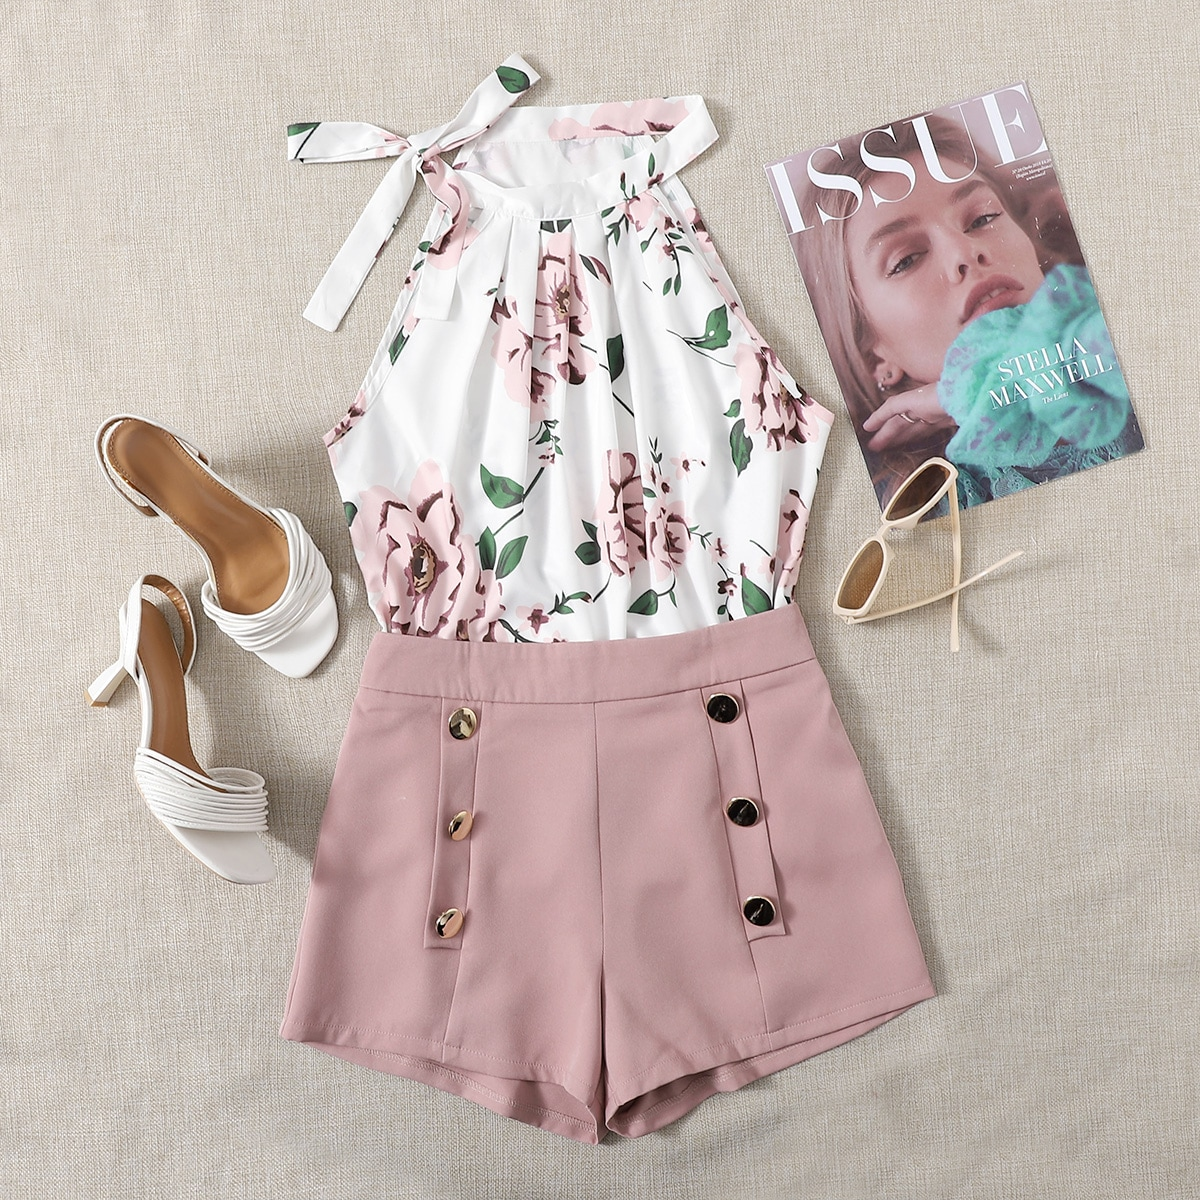 Plus Floral Print Halter Top With Double Breasted Shorts